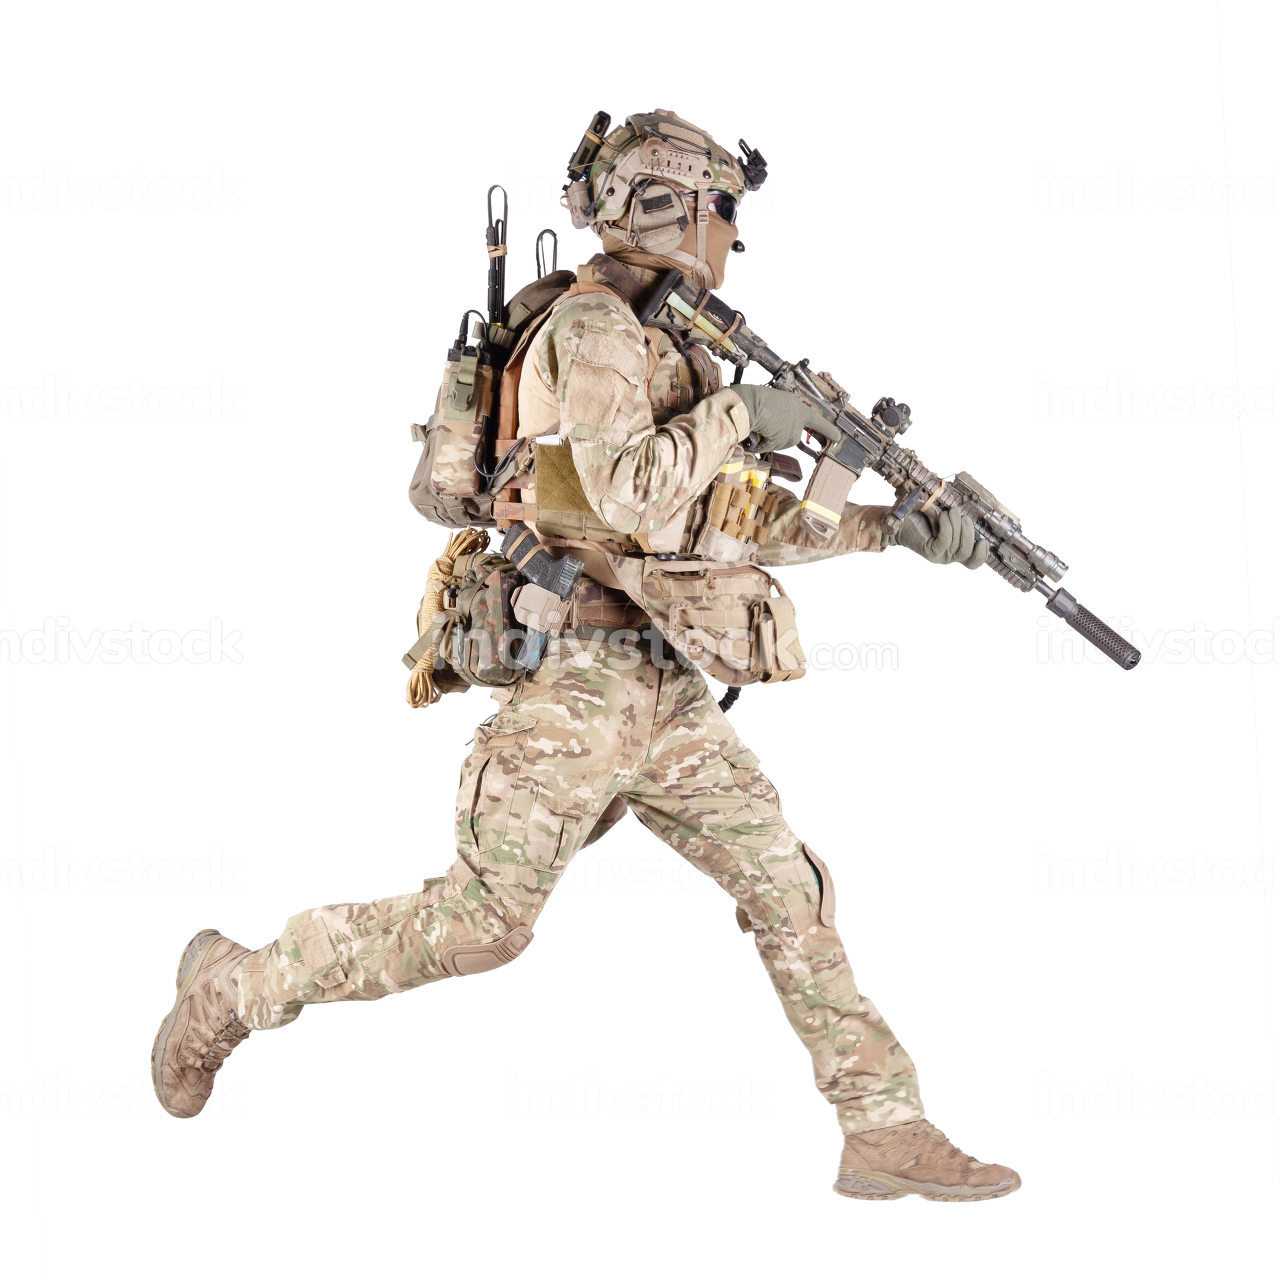 Army soldier, equipped infantryman, airsoft player in camouflage battle uniform, helmet and tactical radio headset jumping, running with assault rifle in hand studio shoot isolated on white background